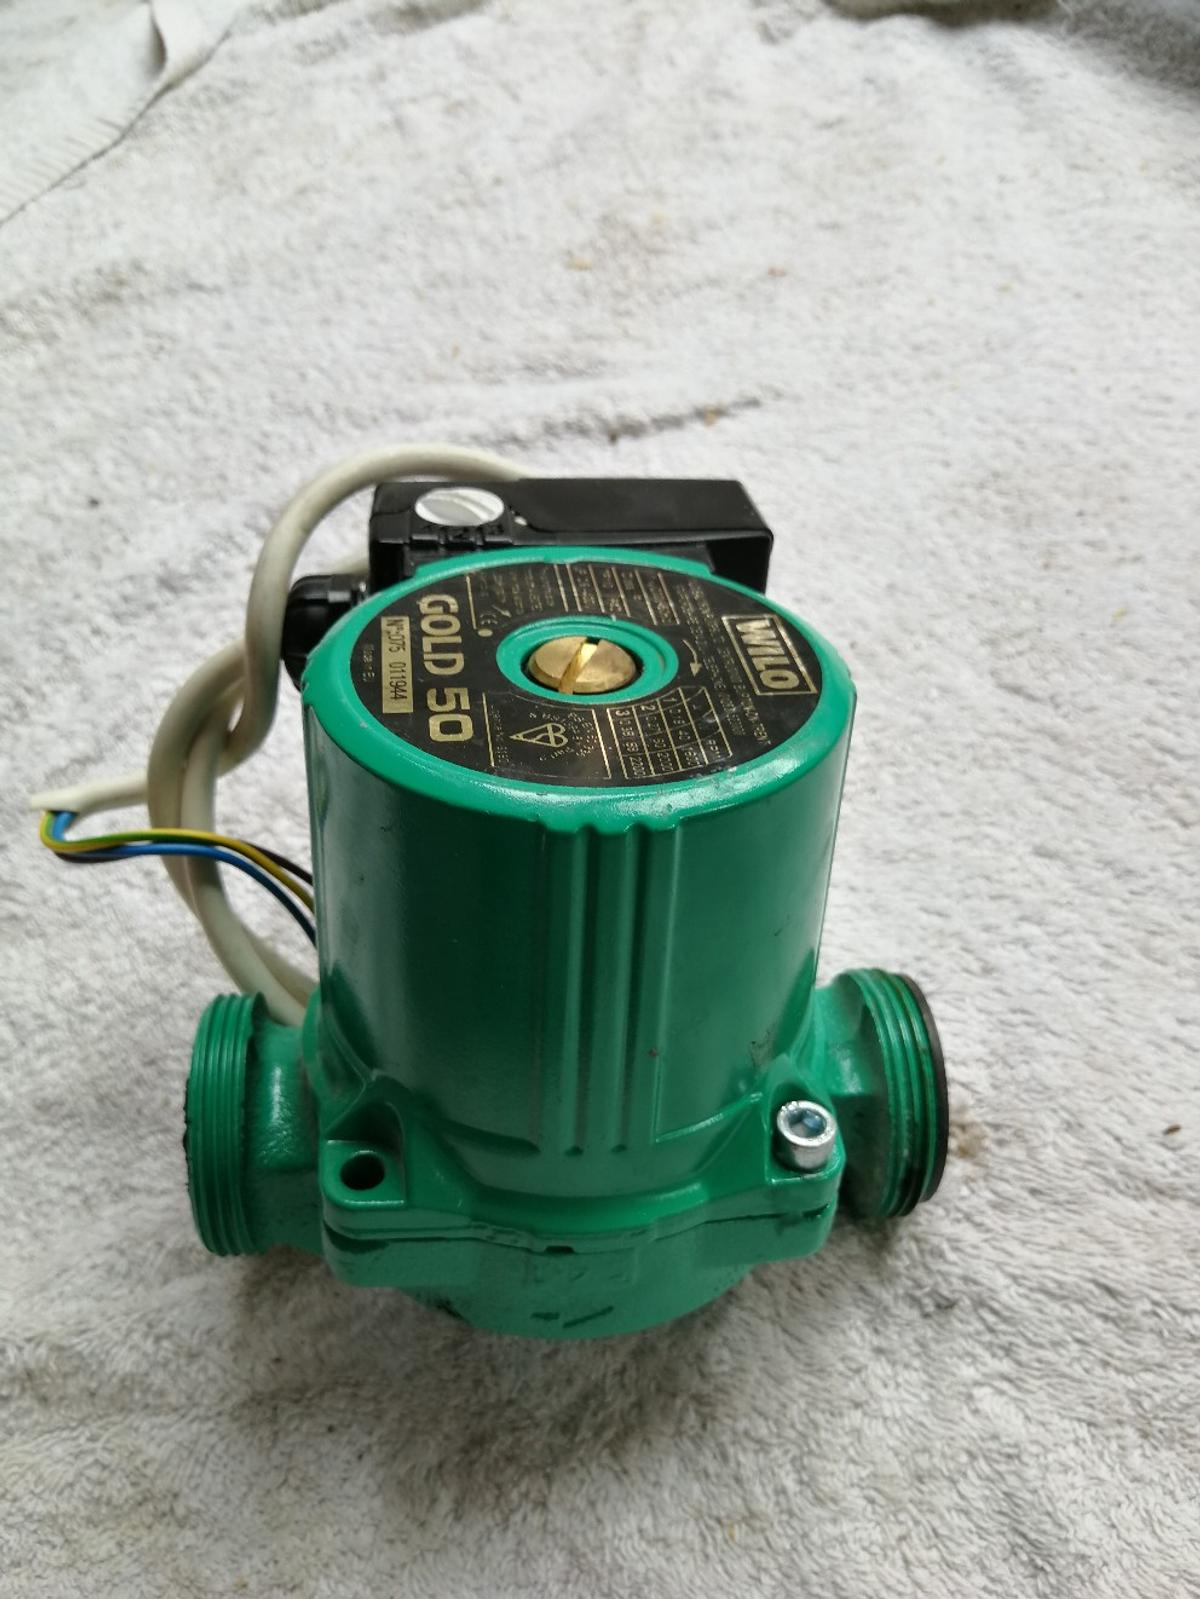 Wilo Gold 50 Central Heating Pump In Wigan For  U00a340 00 For Sale